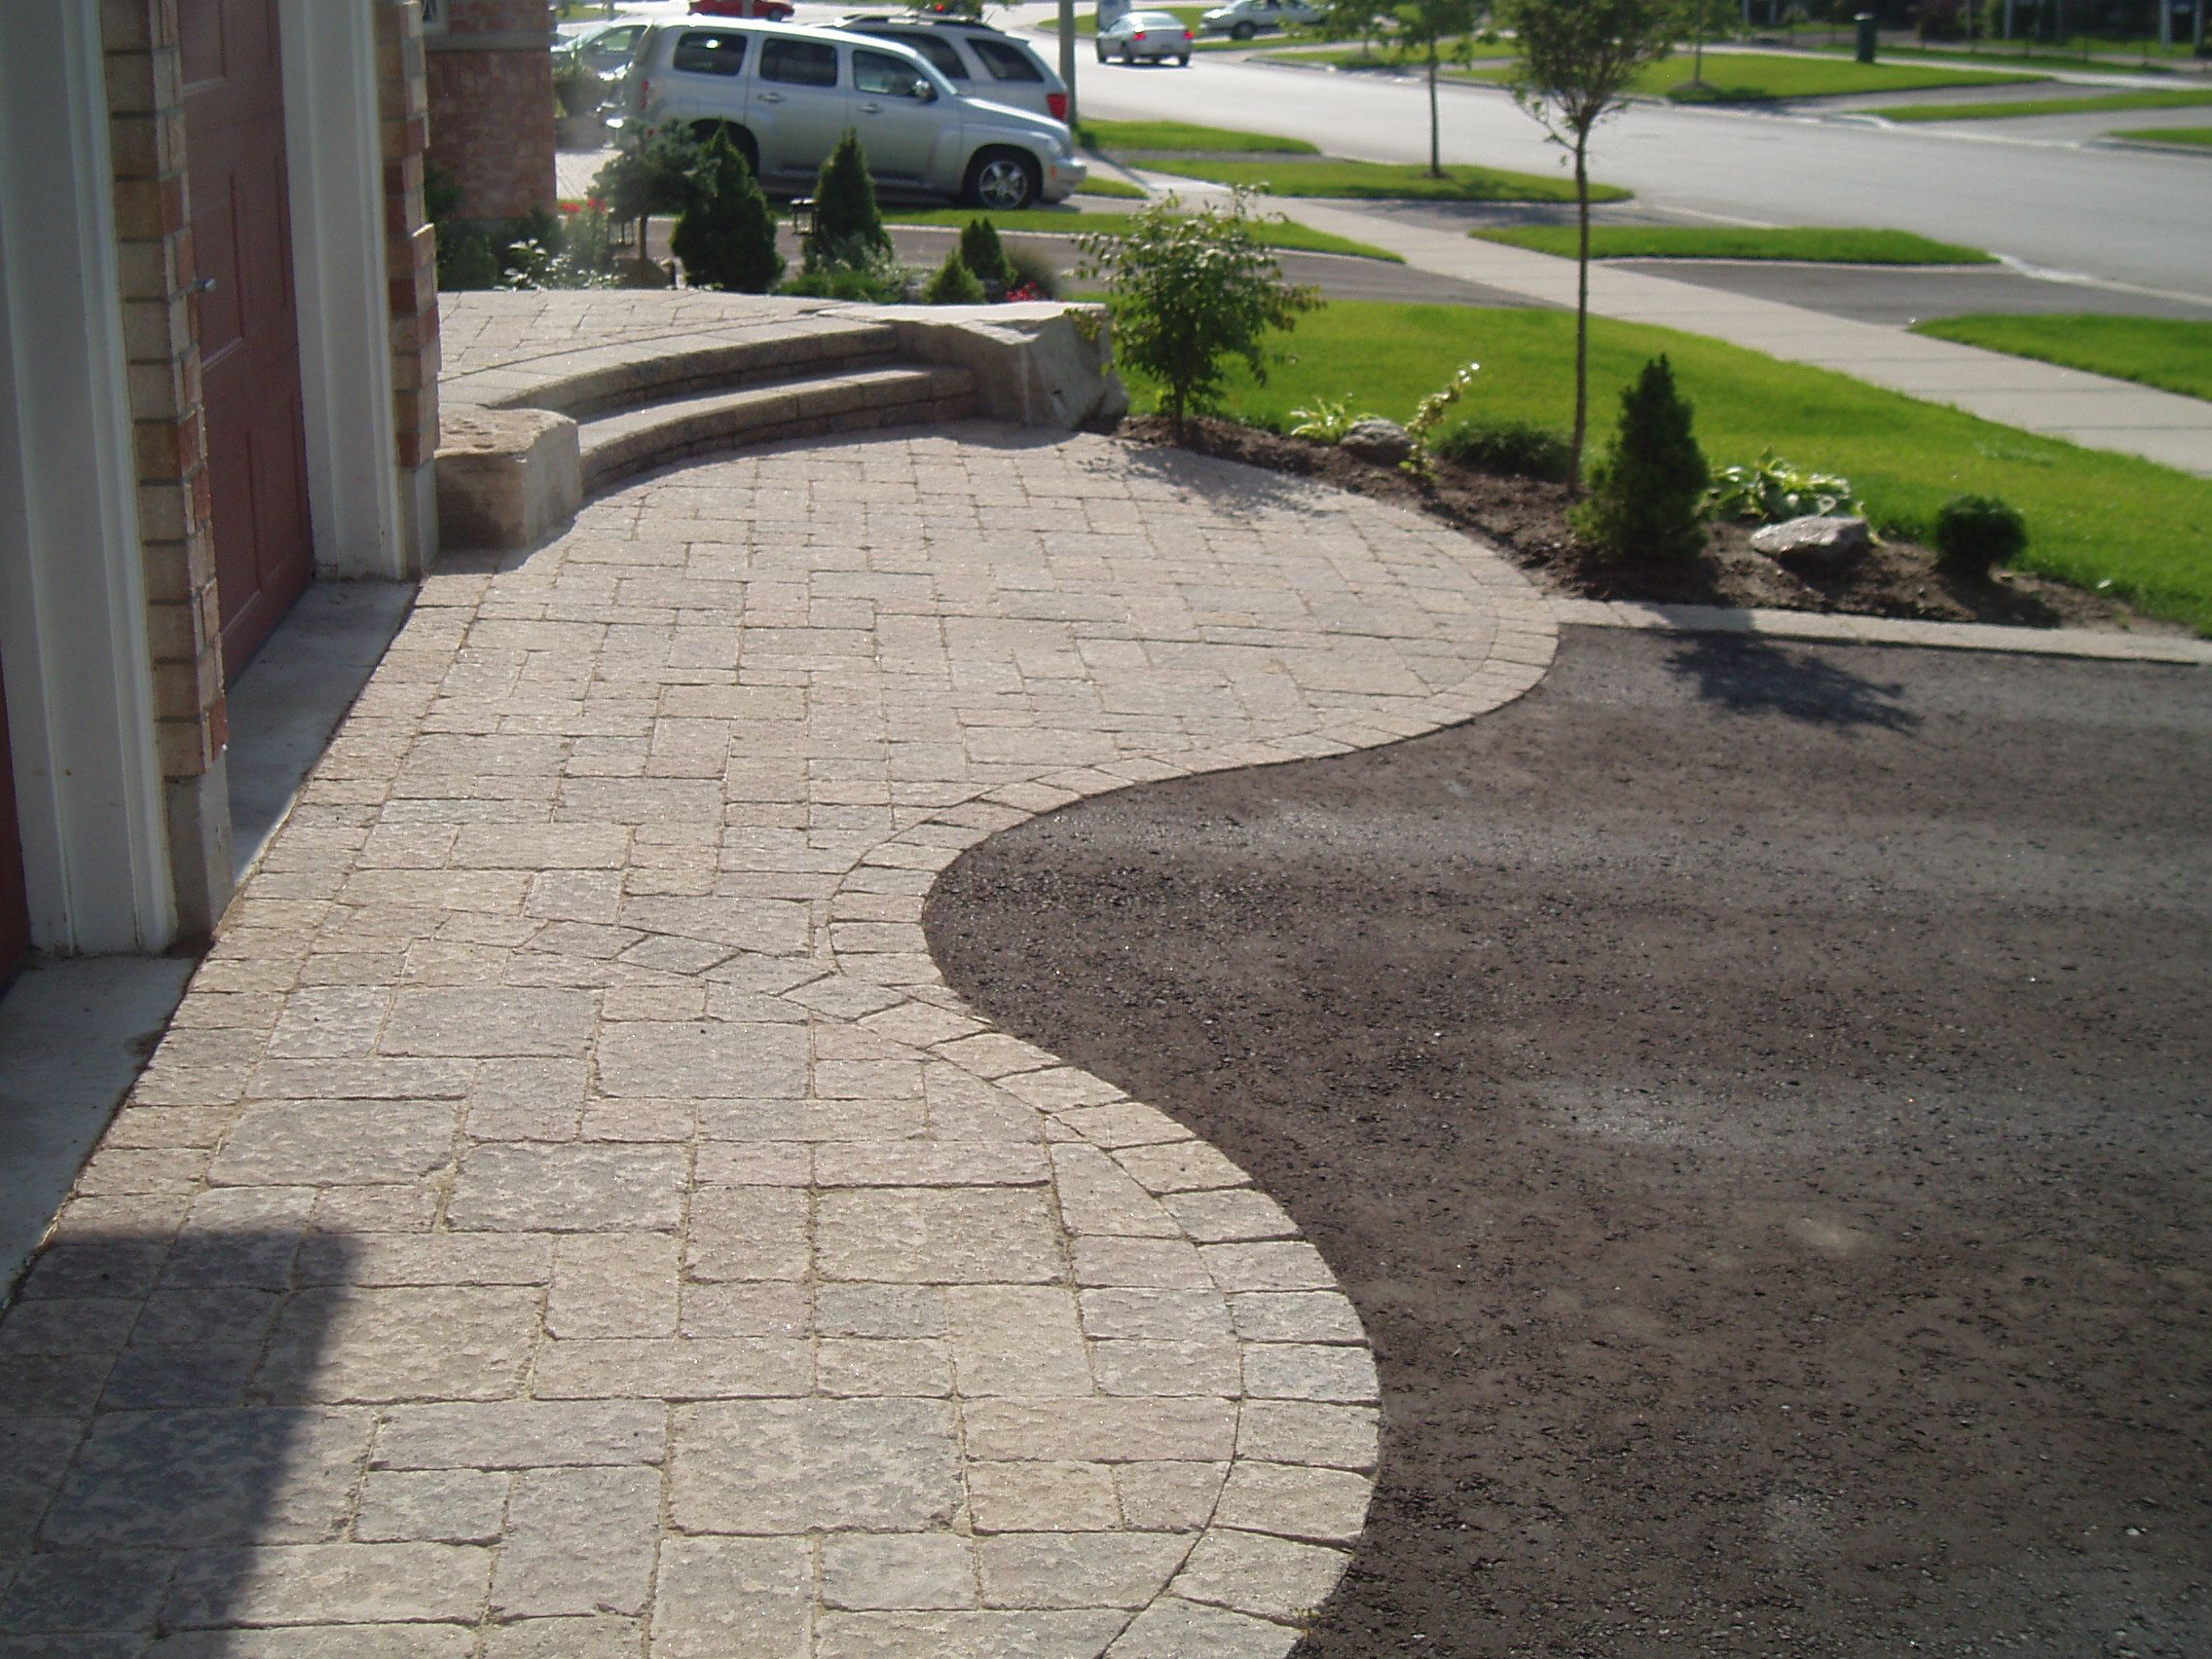 Driveway design houses curb appeal by installing a curved driveway design houses curb appeal by installing a curved interlock stone design solutioingenieria Gallery